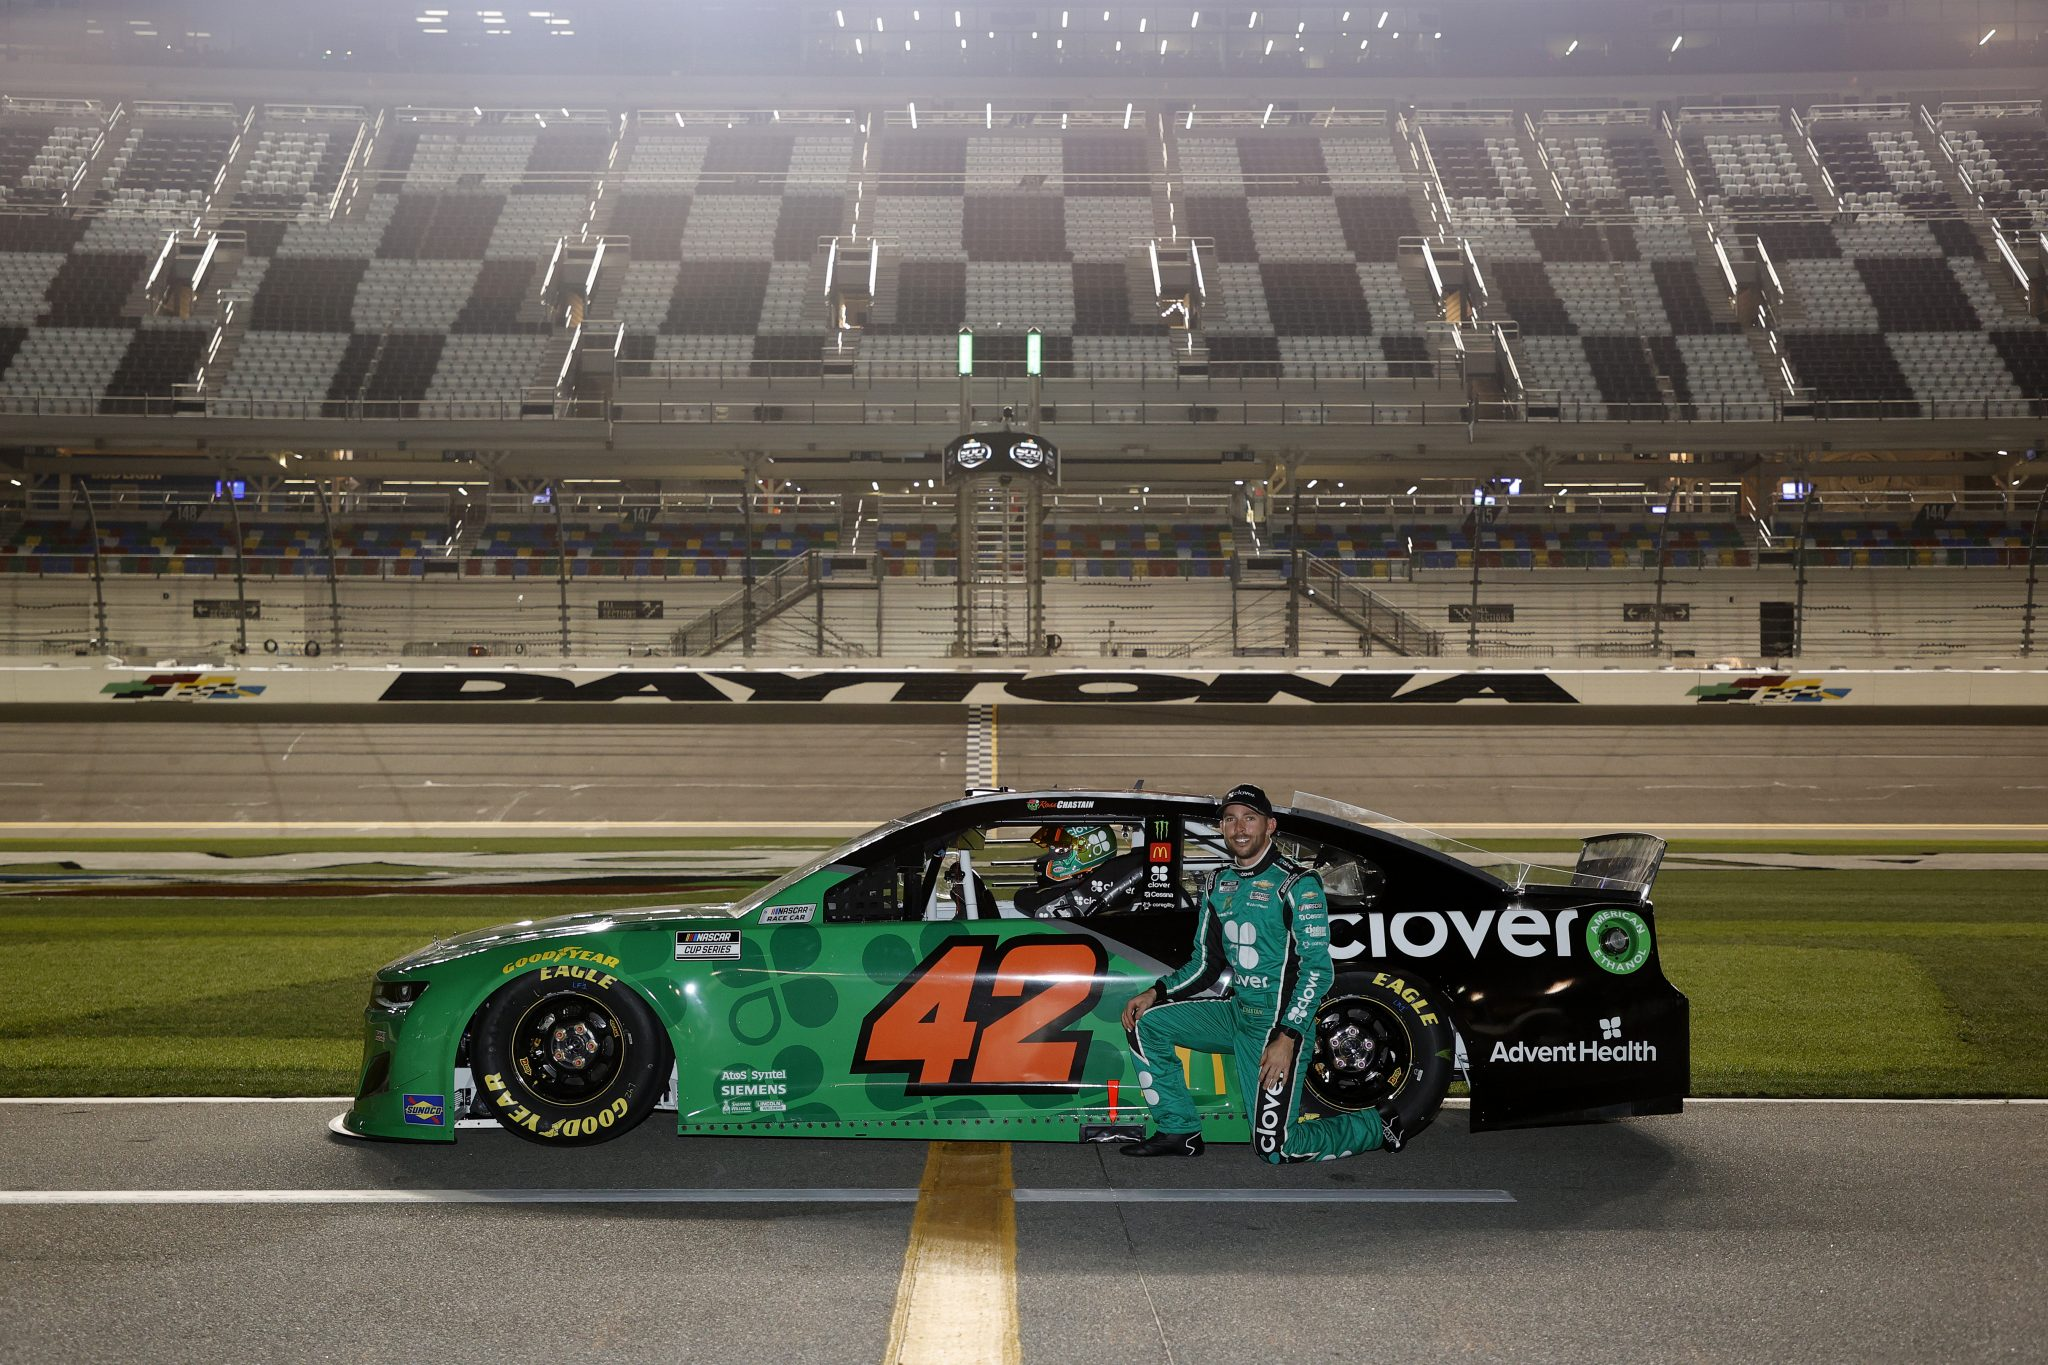 DAYTONA BEACH, FLORIDA - FEBRUARY 10: Ross Chastain, driver of the #42 Clover Chevrolet, poses for photos during qualifying for the NASCAR Cup Series 63rd Annual Daytona 500 at Daytona International Speedway on February 10, 2021 in Daytona Beach, Florida. (Photo by Jared C. Tilton/Getty Images) | Getty Images